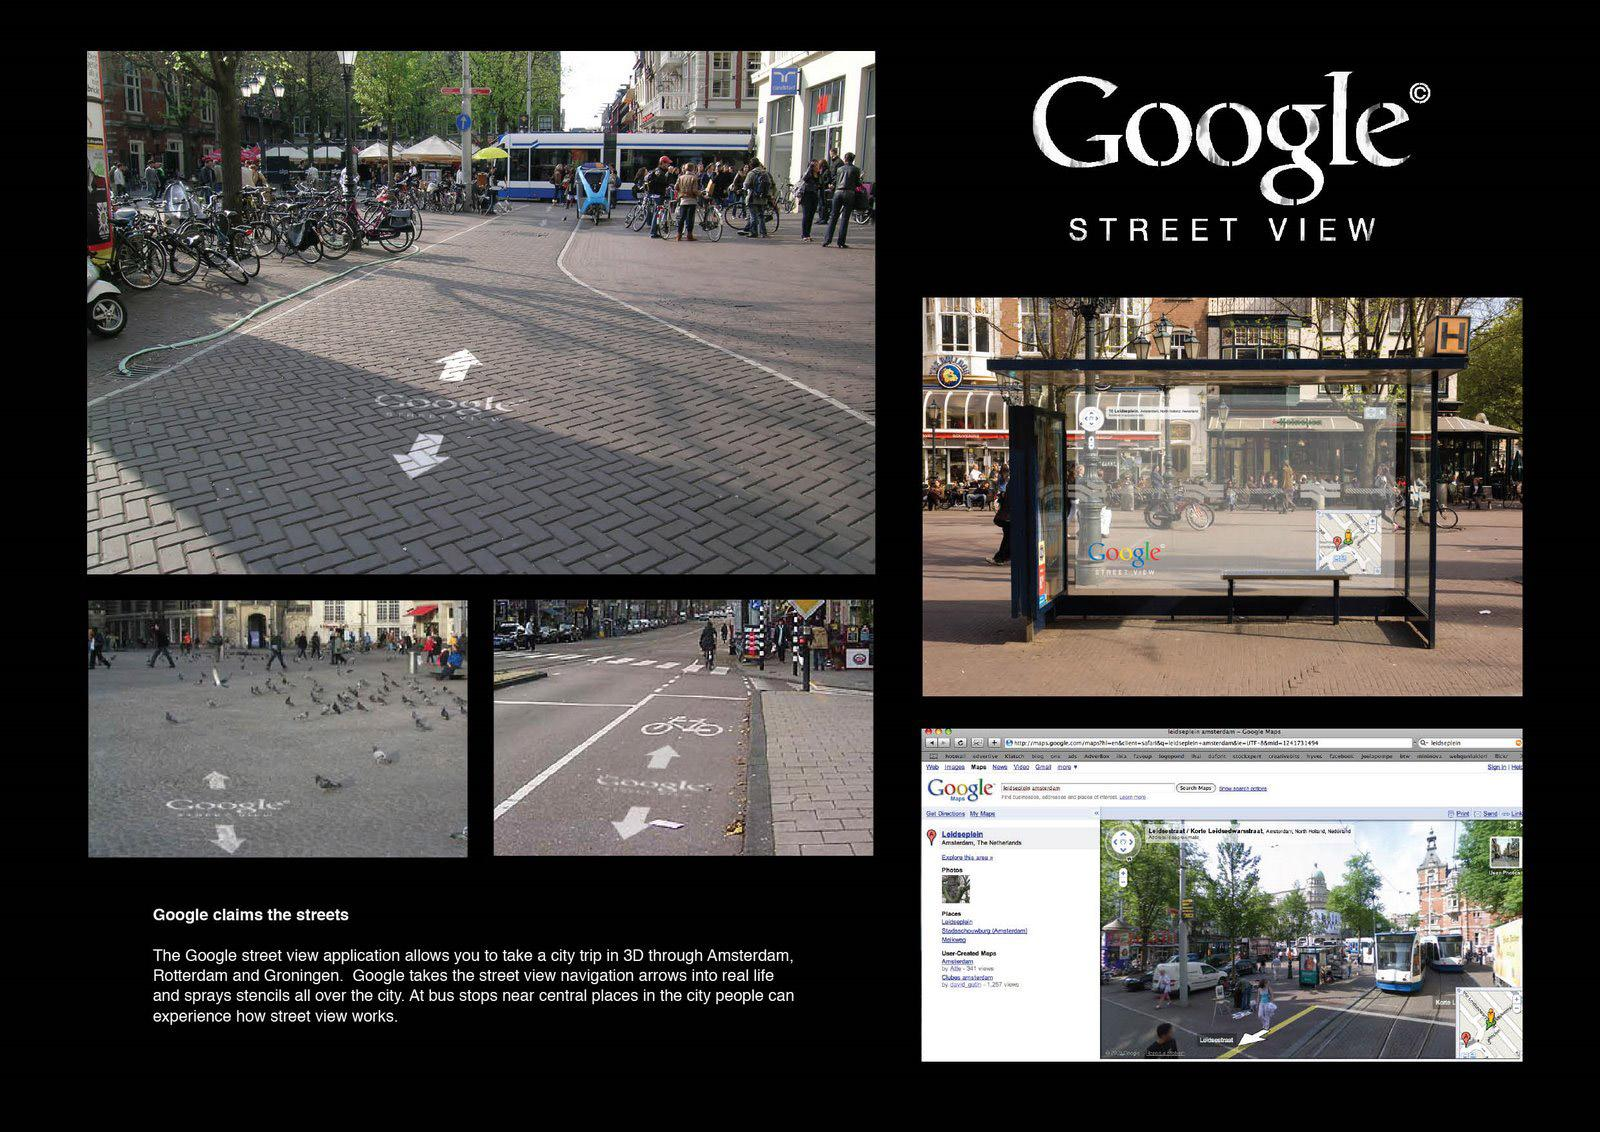 Google Outdoor Ad -  Google claims the streets